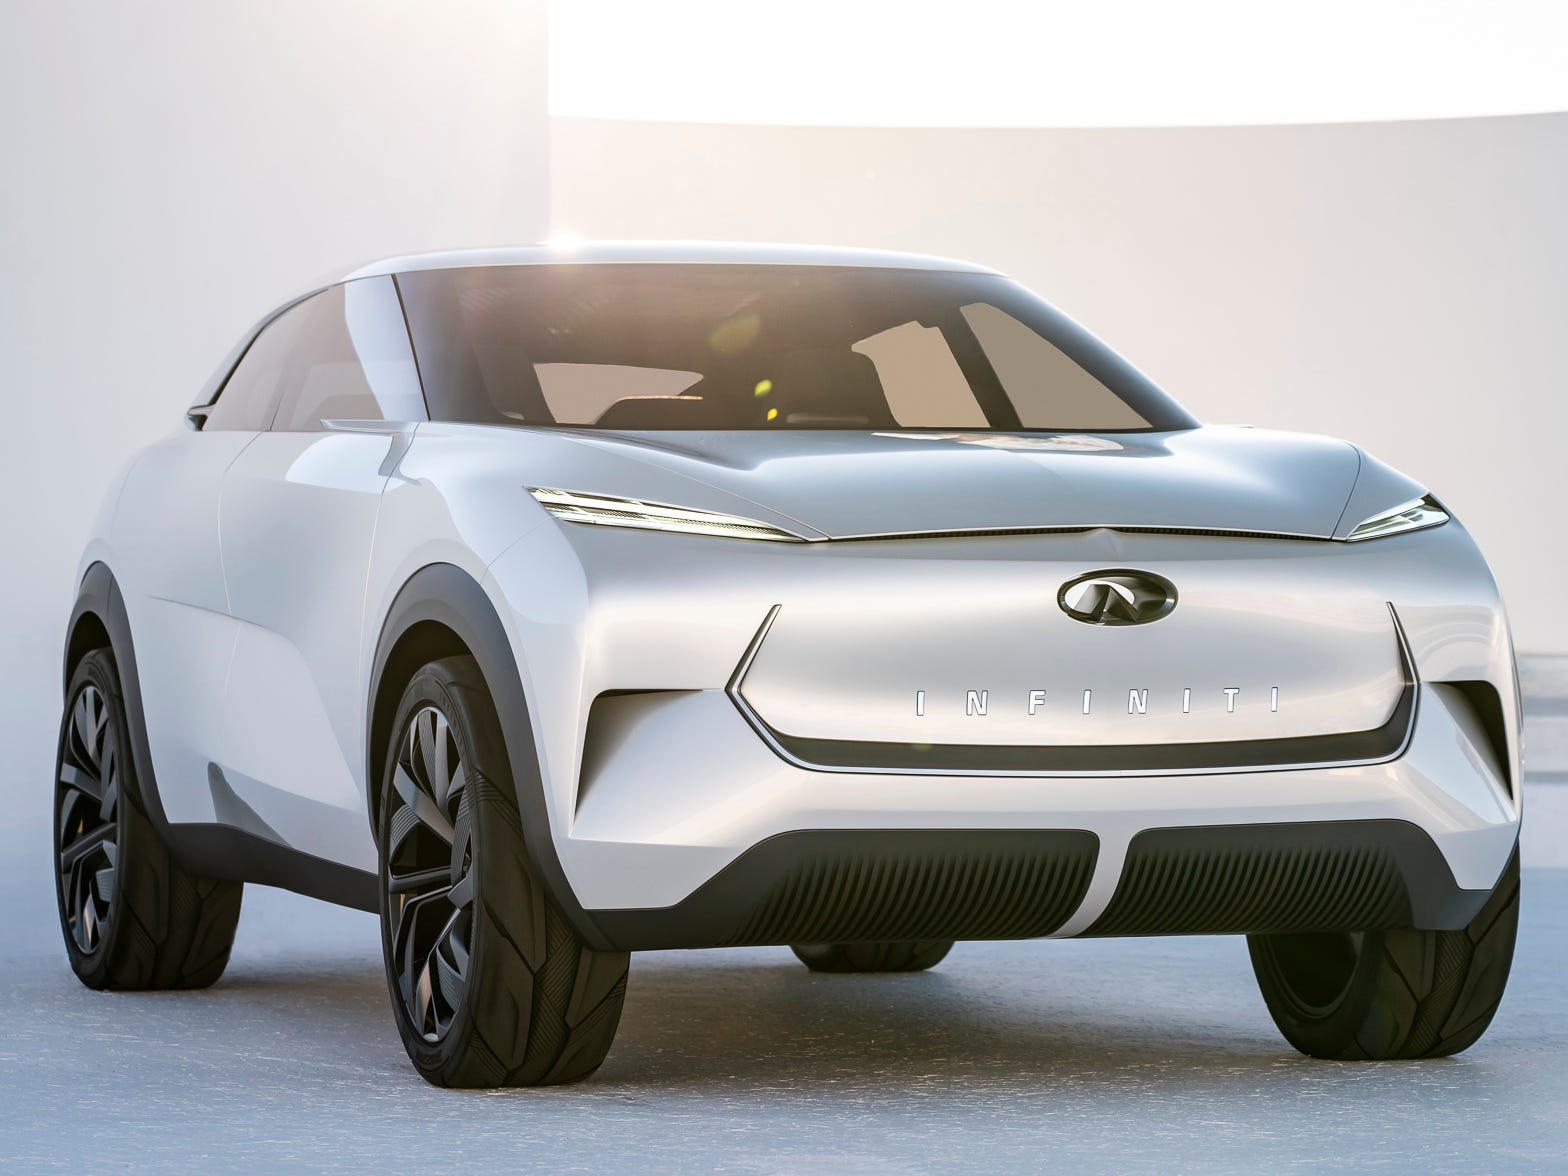 As a company with technological and powertrain innovation at its core, electrification is a natural next step for Infiniti.